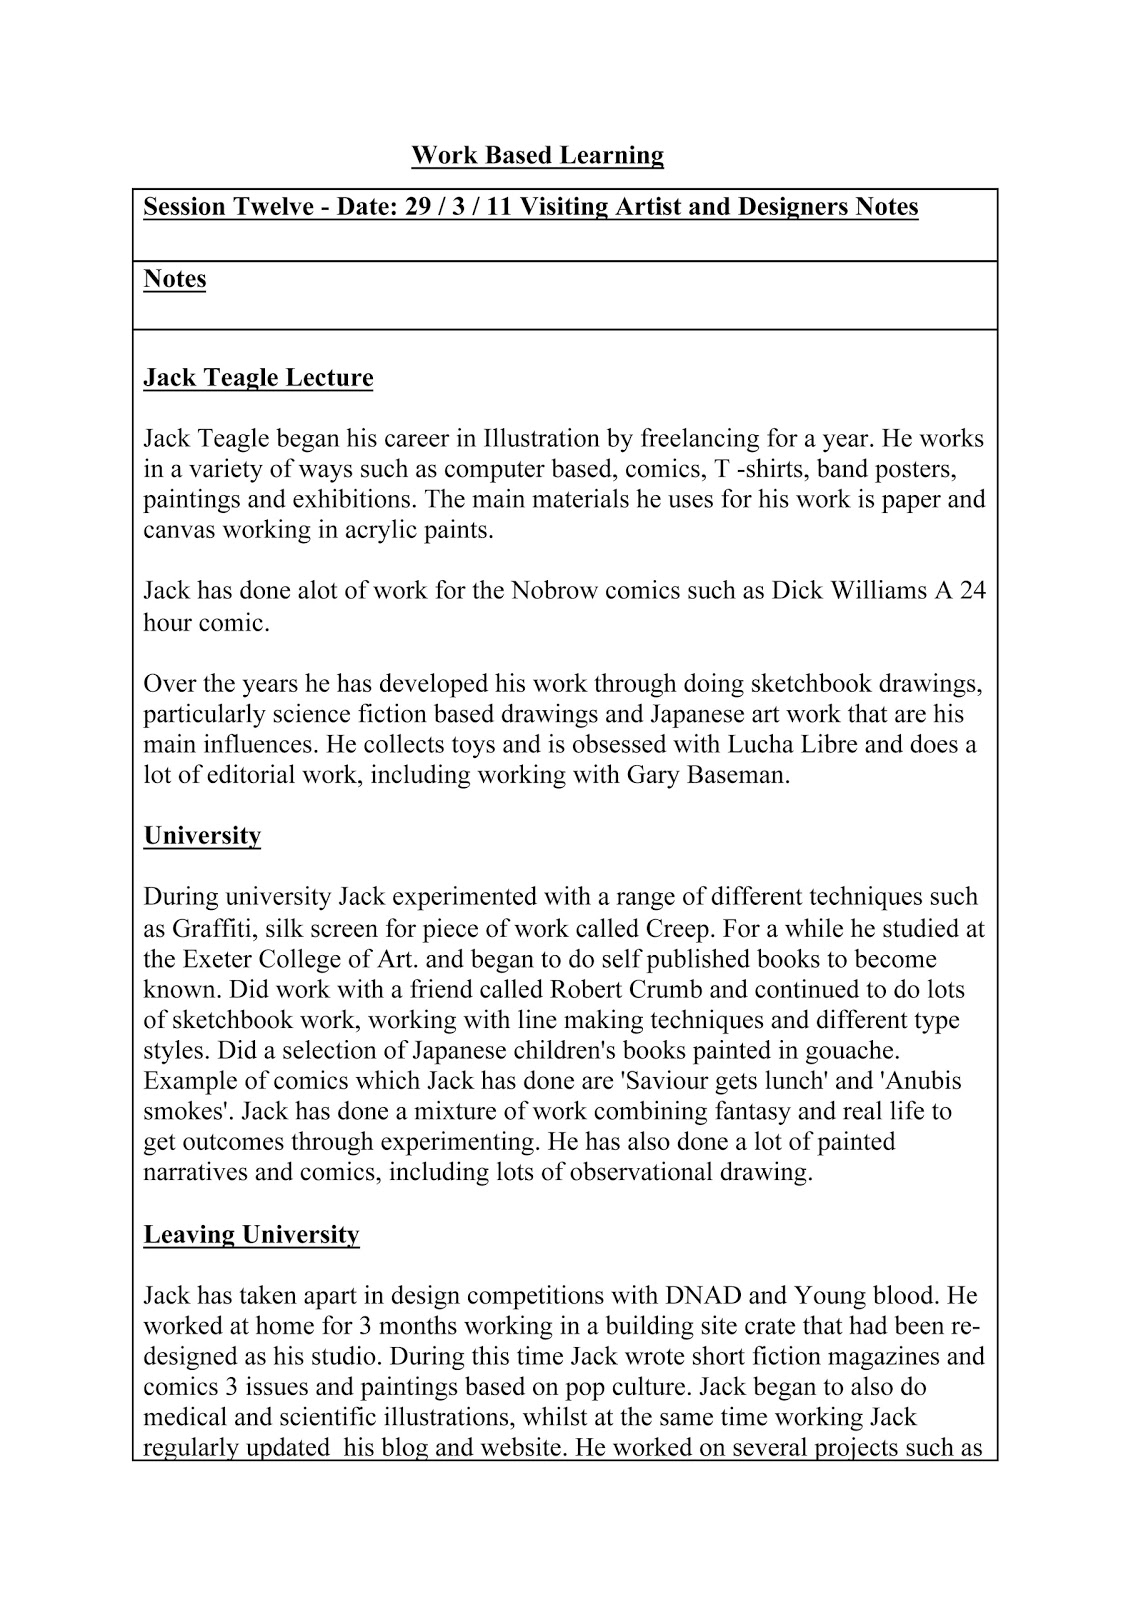 work based learning essay Introduction work-based learning (wbl) as a method for learning is playing an increasing role in professional development and lifelong learning.